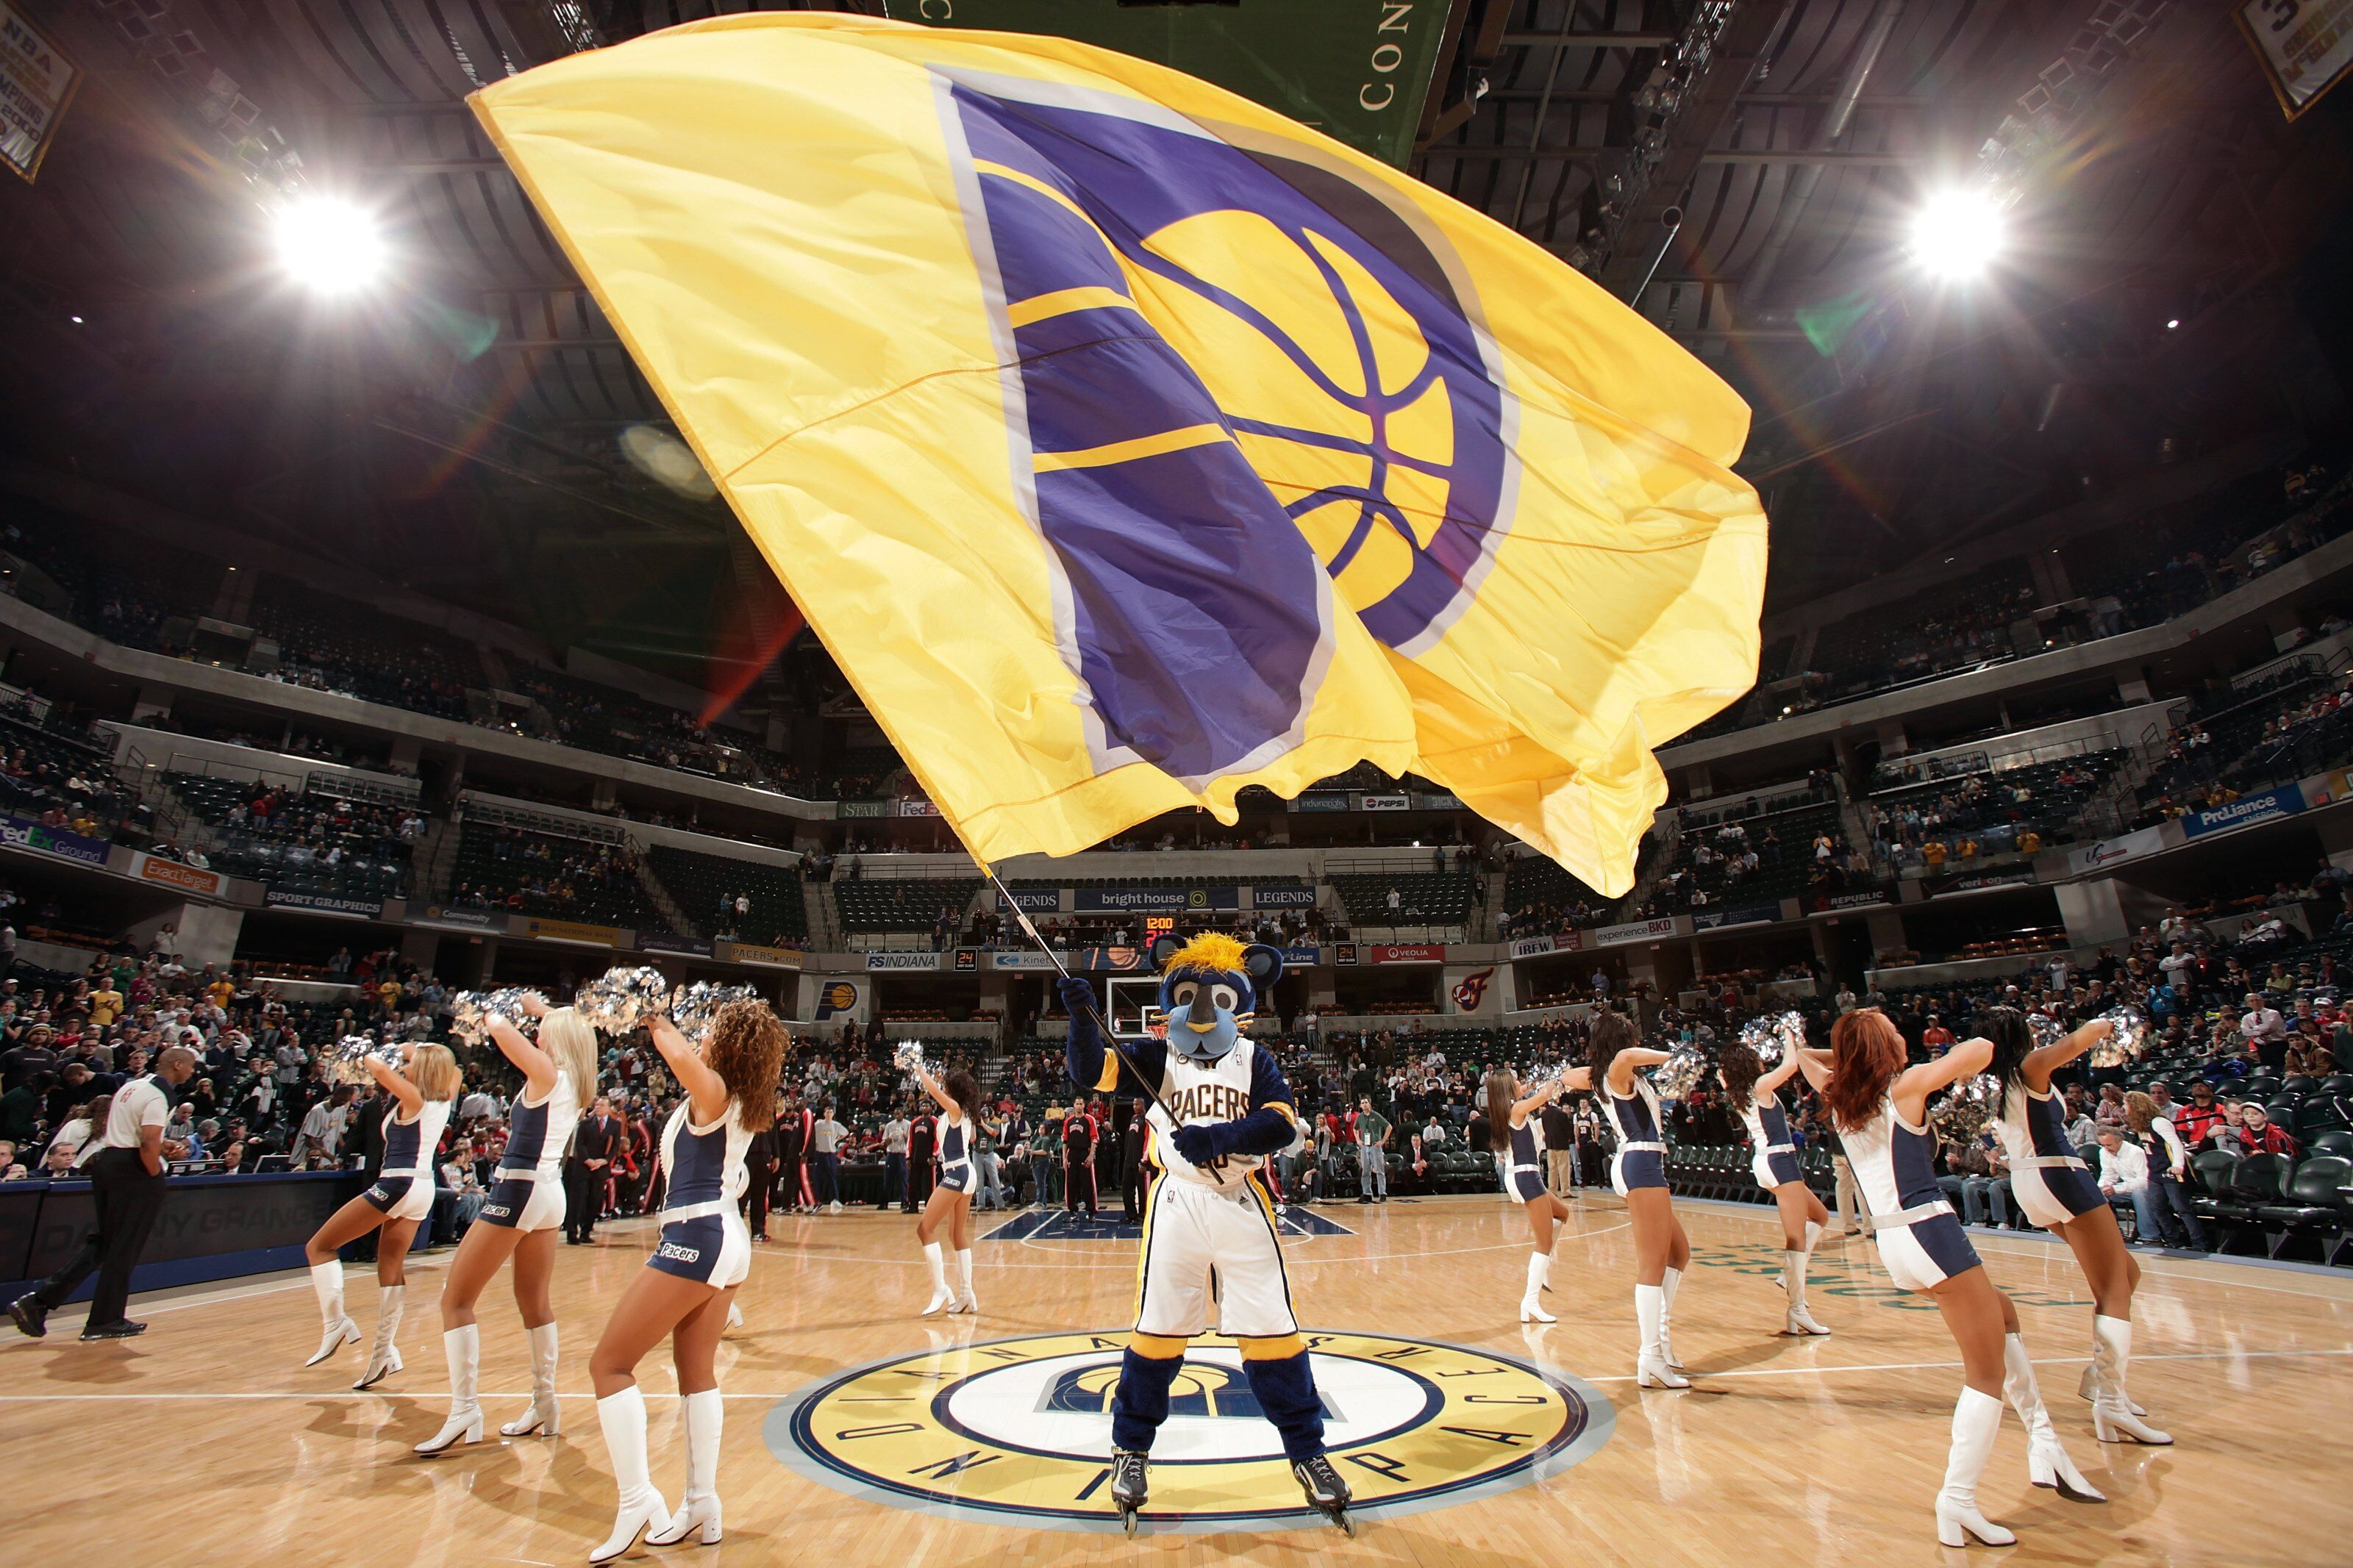 Opening night is winning time for the Indiana Pacers